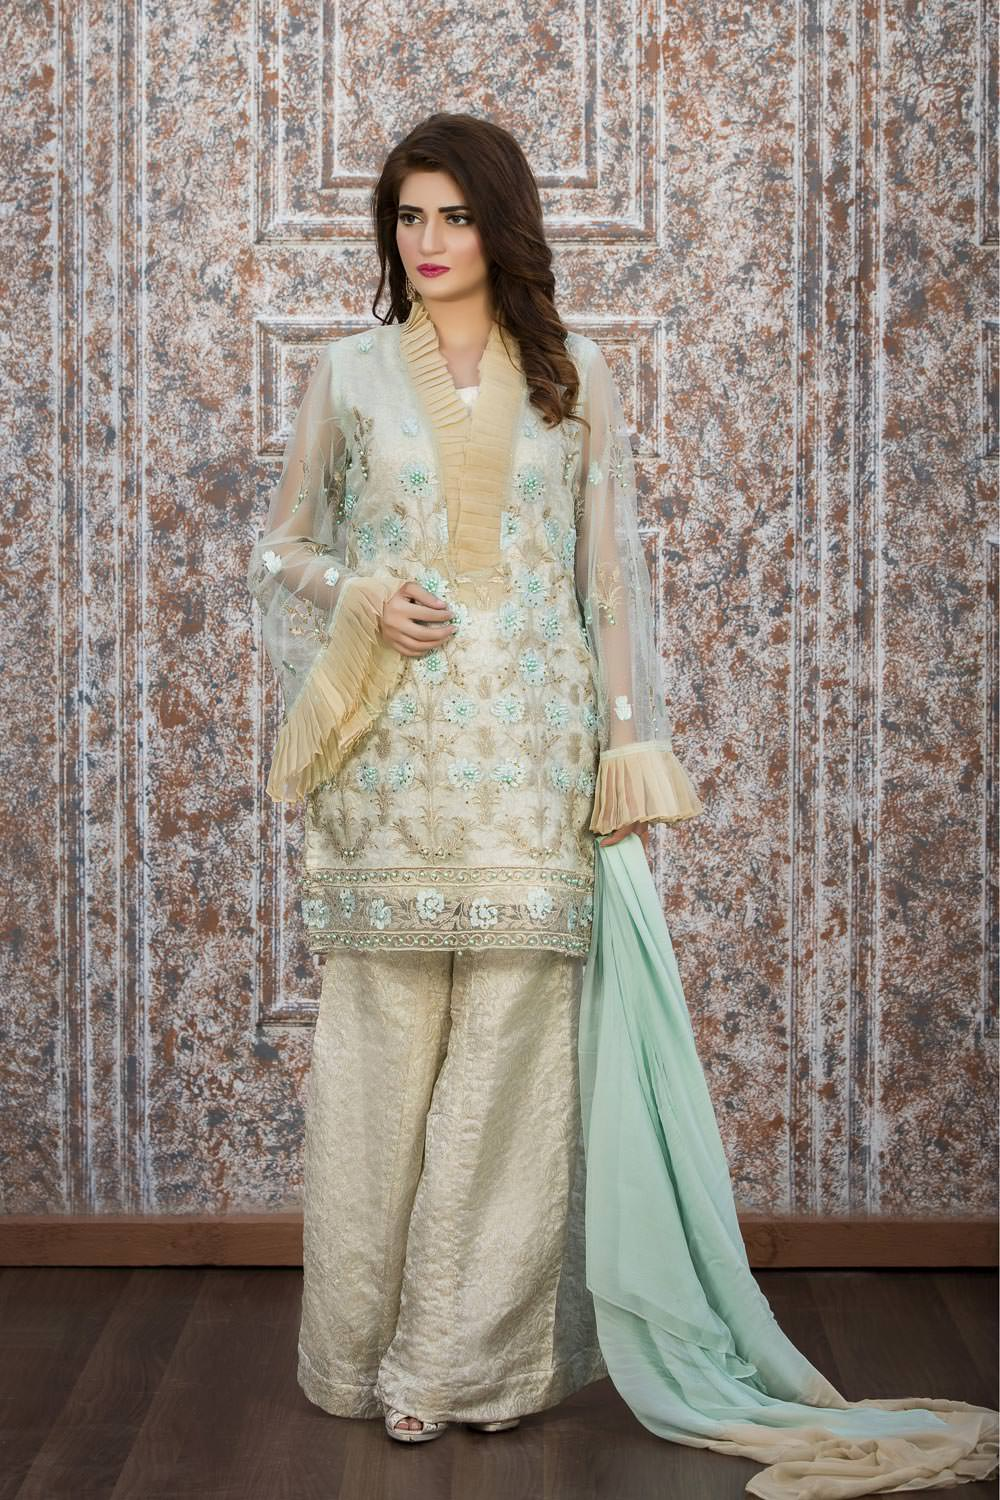 dd5eed4370 EXCLUSIVE AQUA GREEN AND OFF-WHITE PARTY WEAR - ZZS33 - Exclusive ...